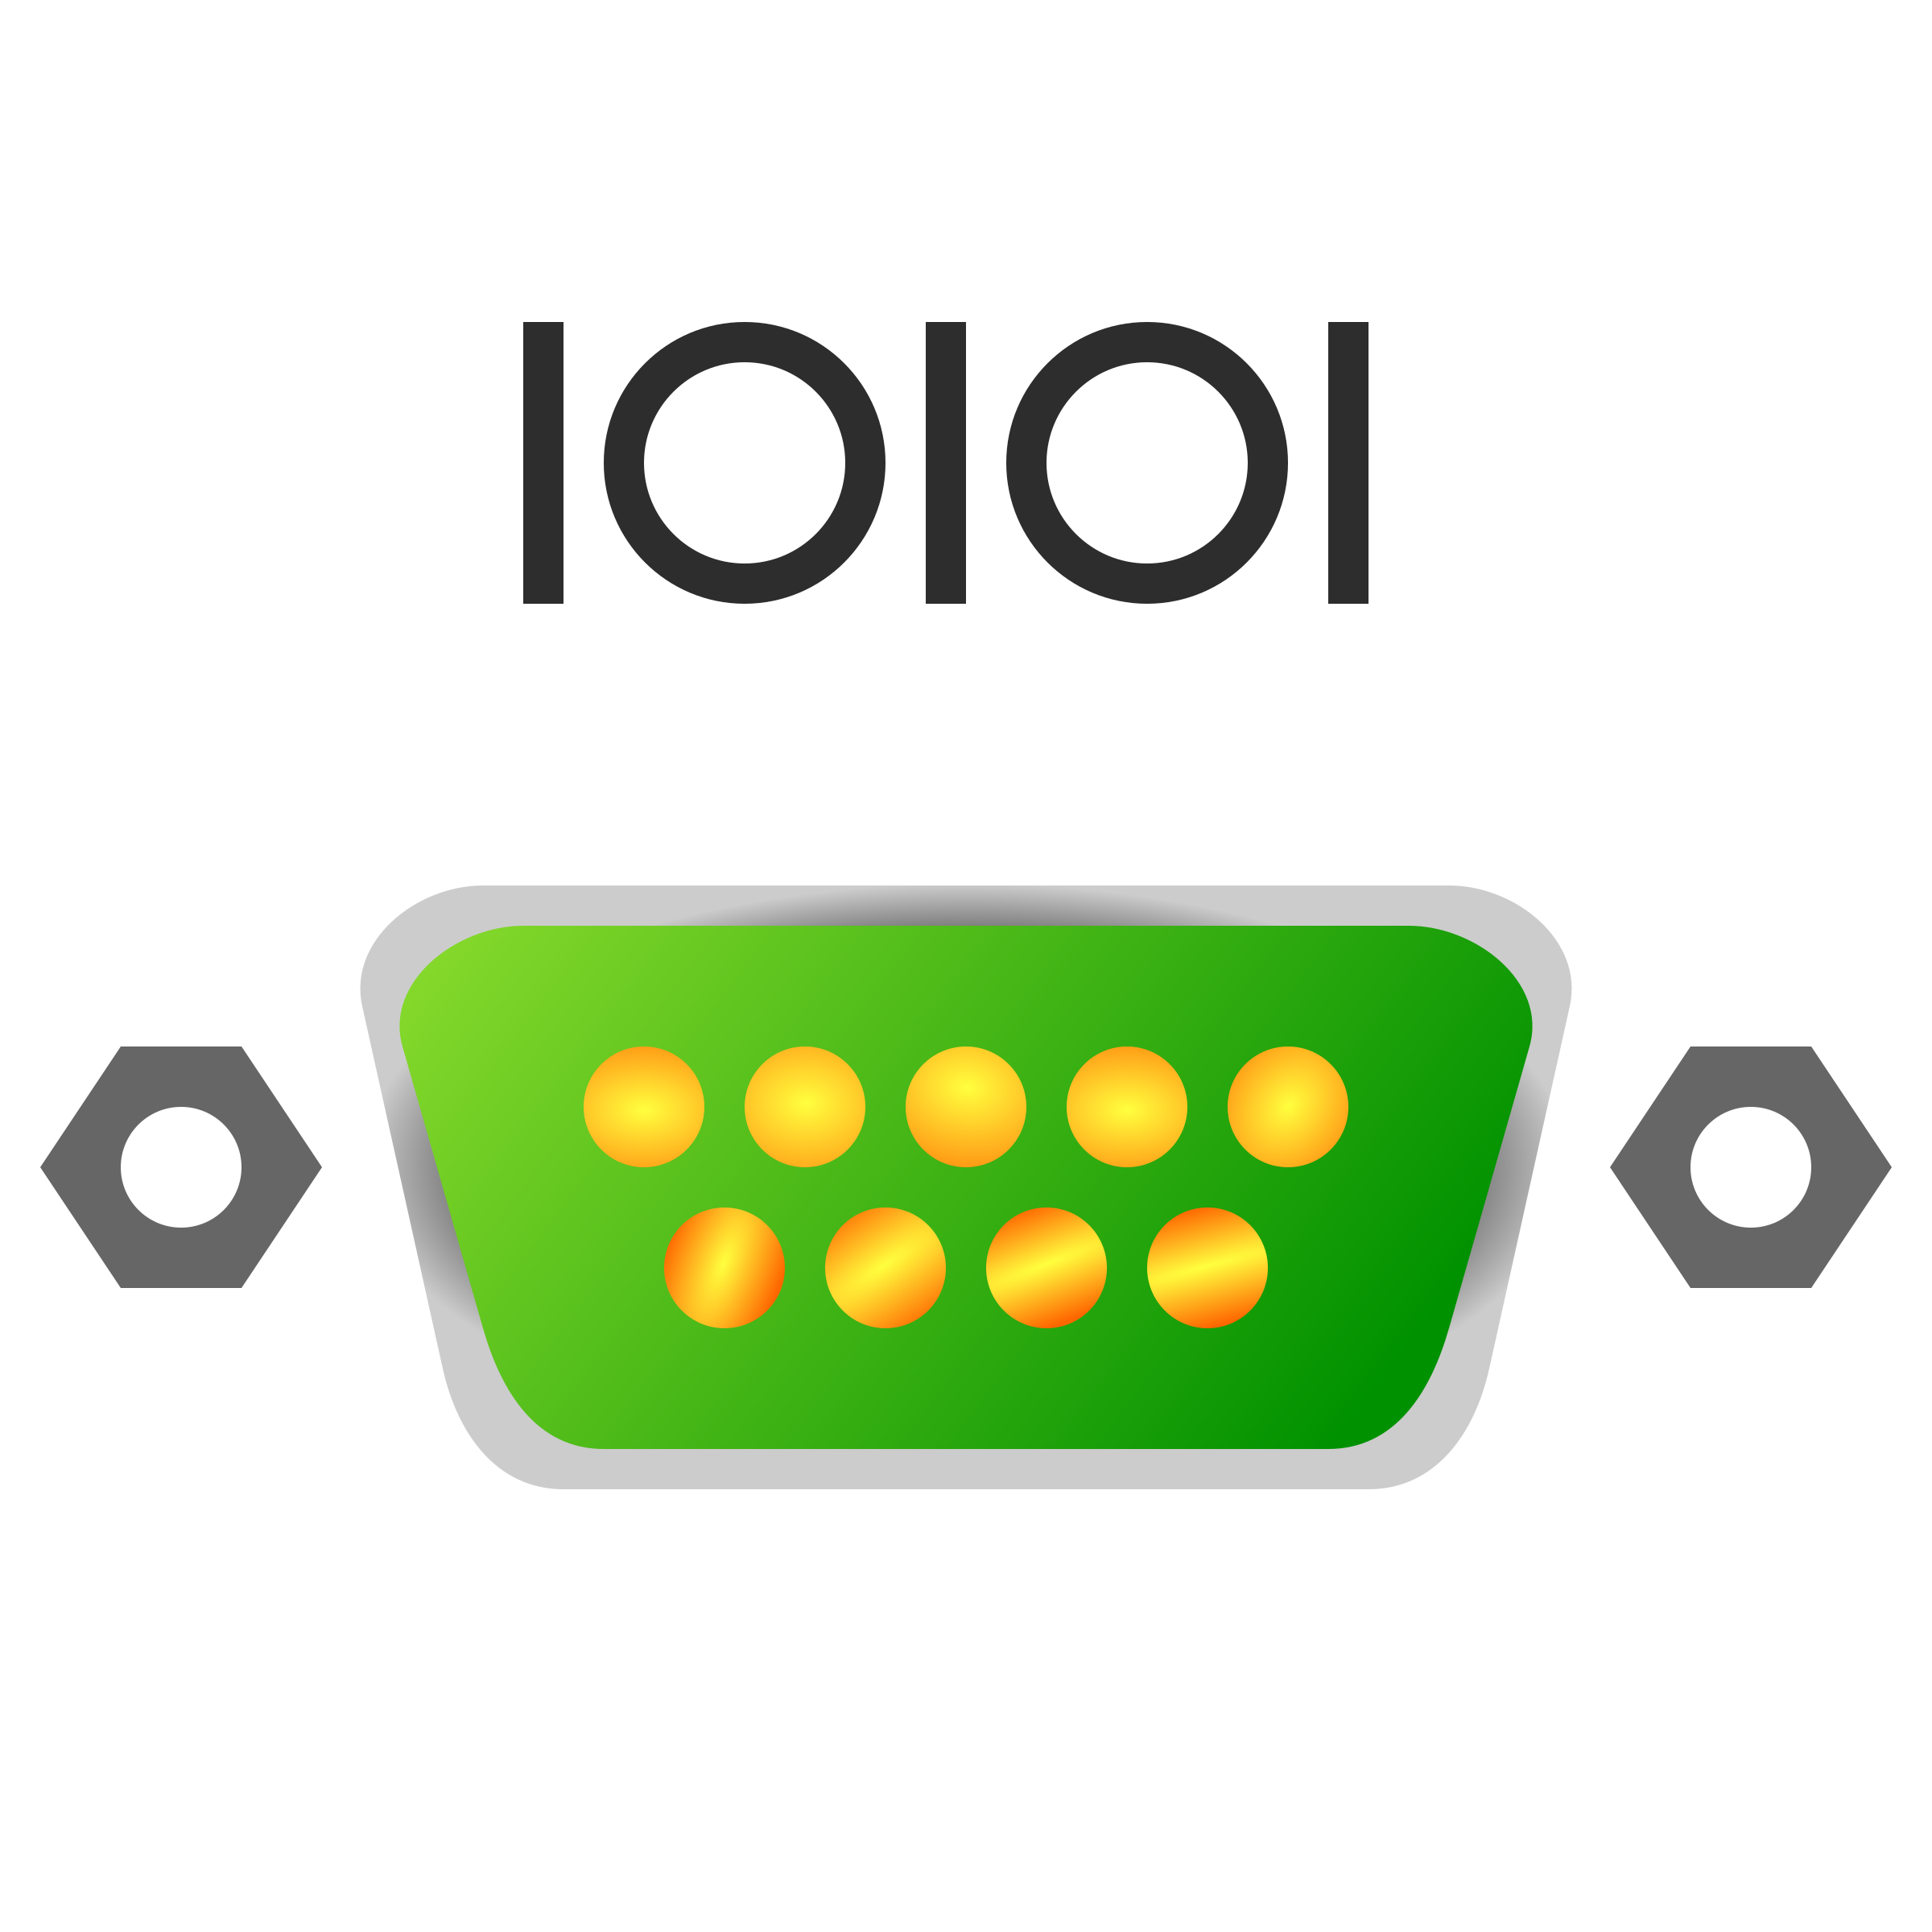 Serial port icon by jhnri4